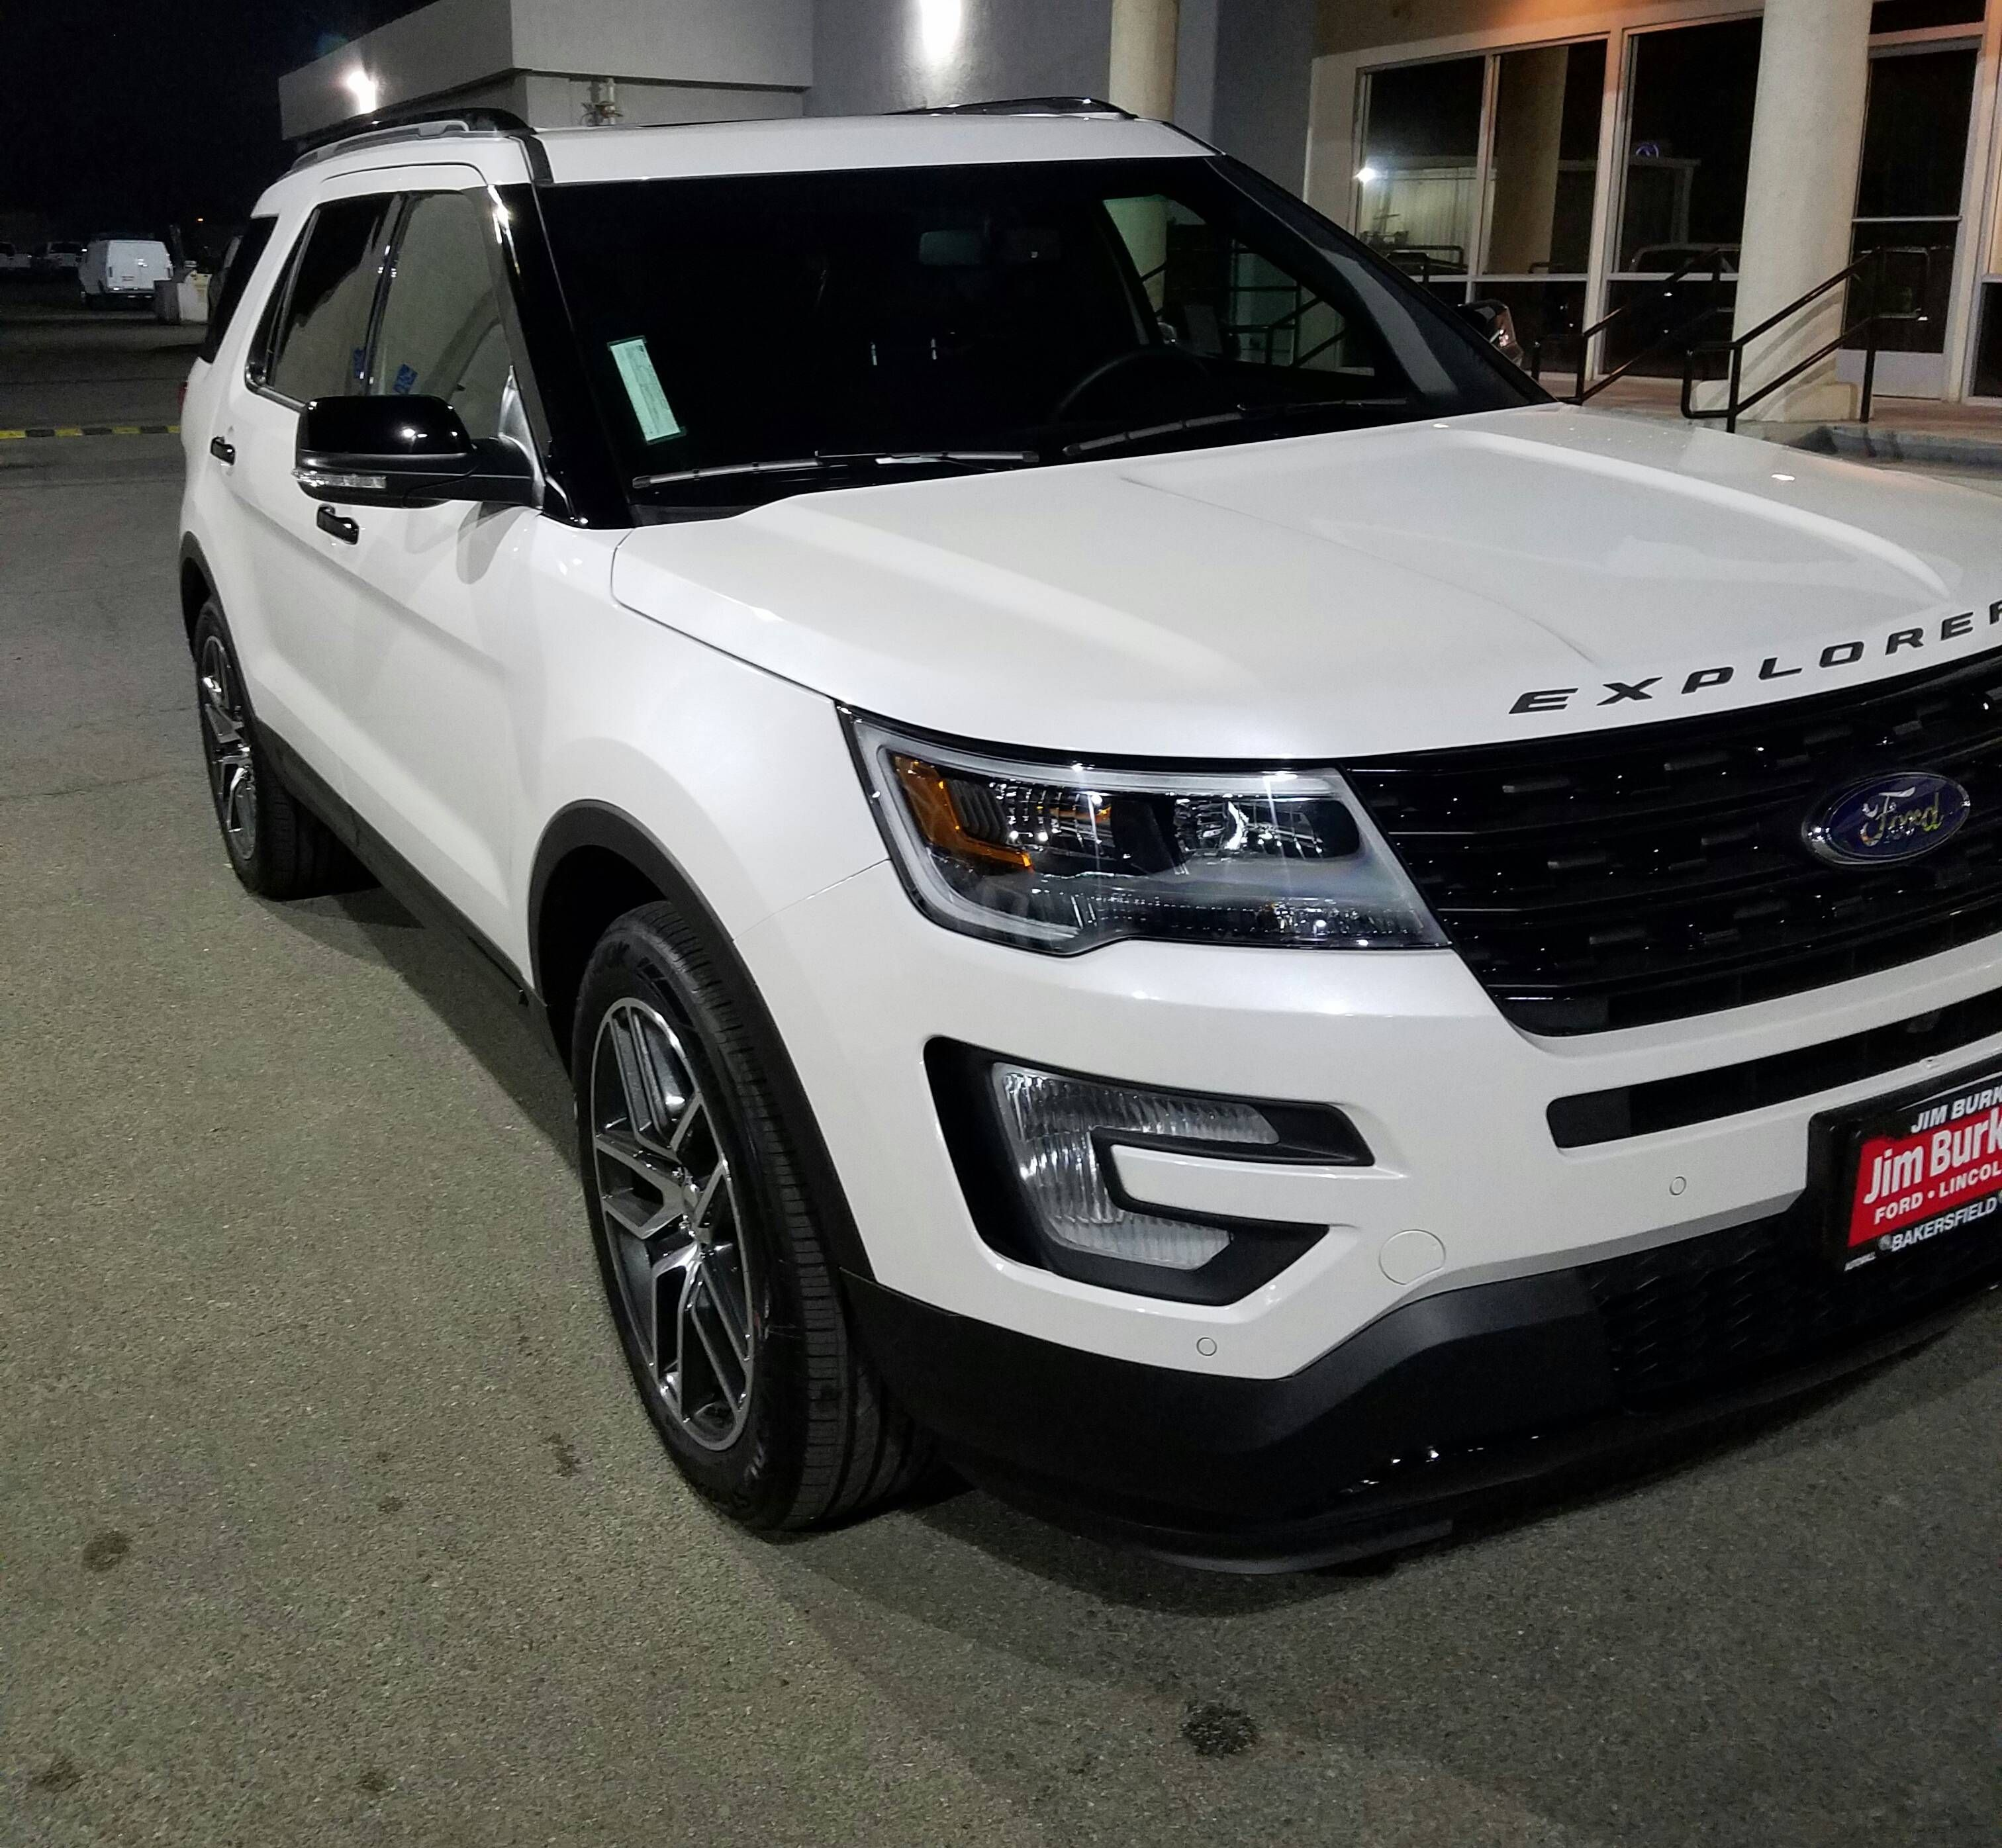 Ford Explorer accessories model